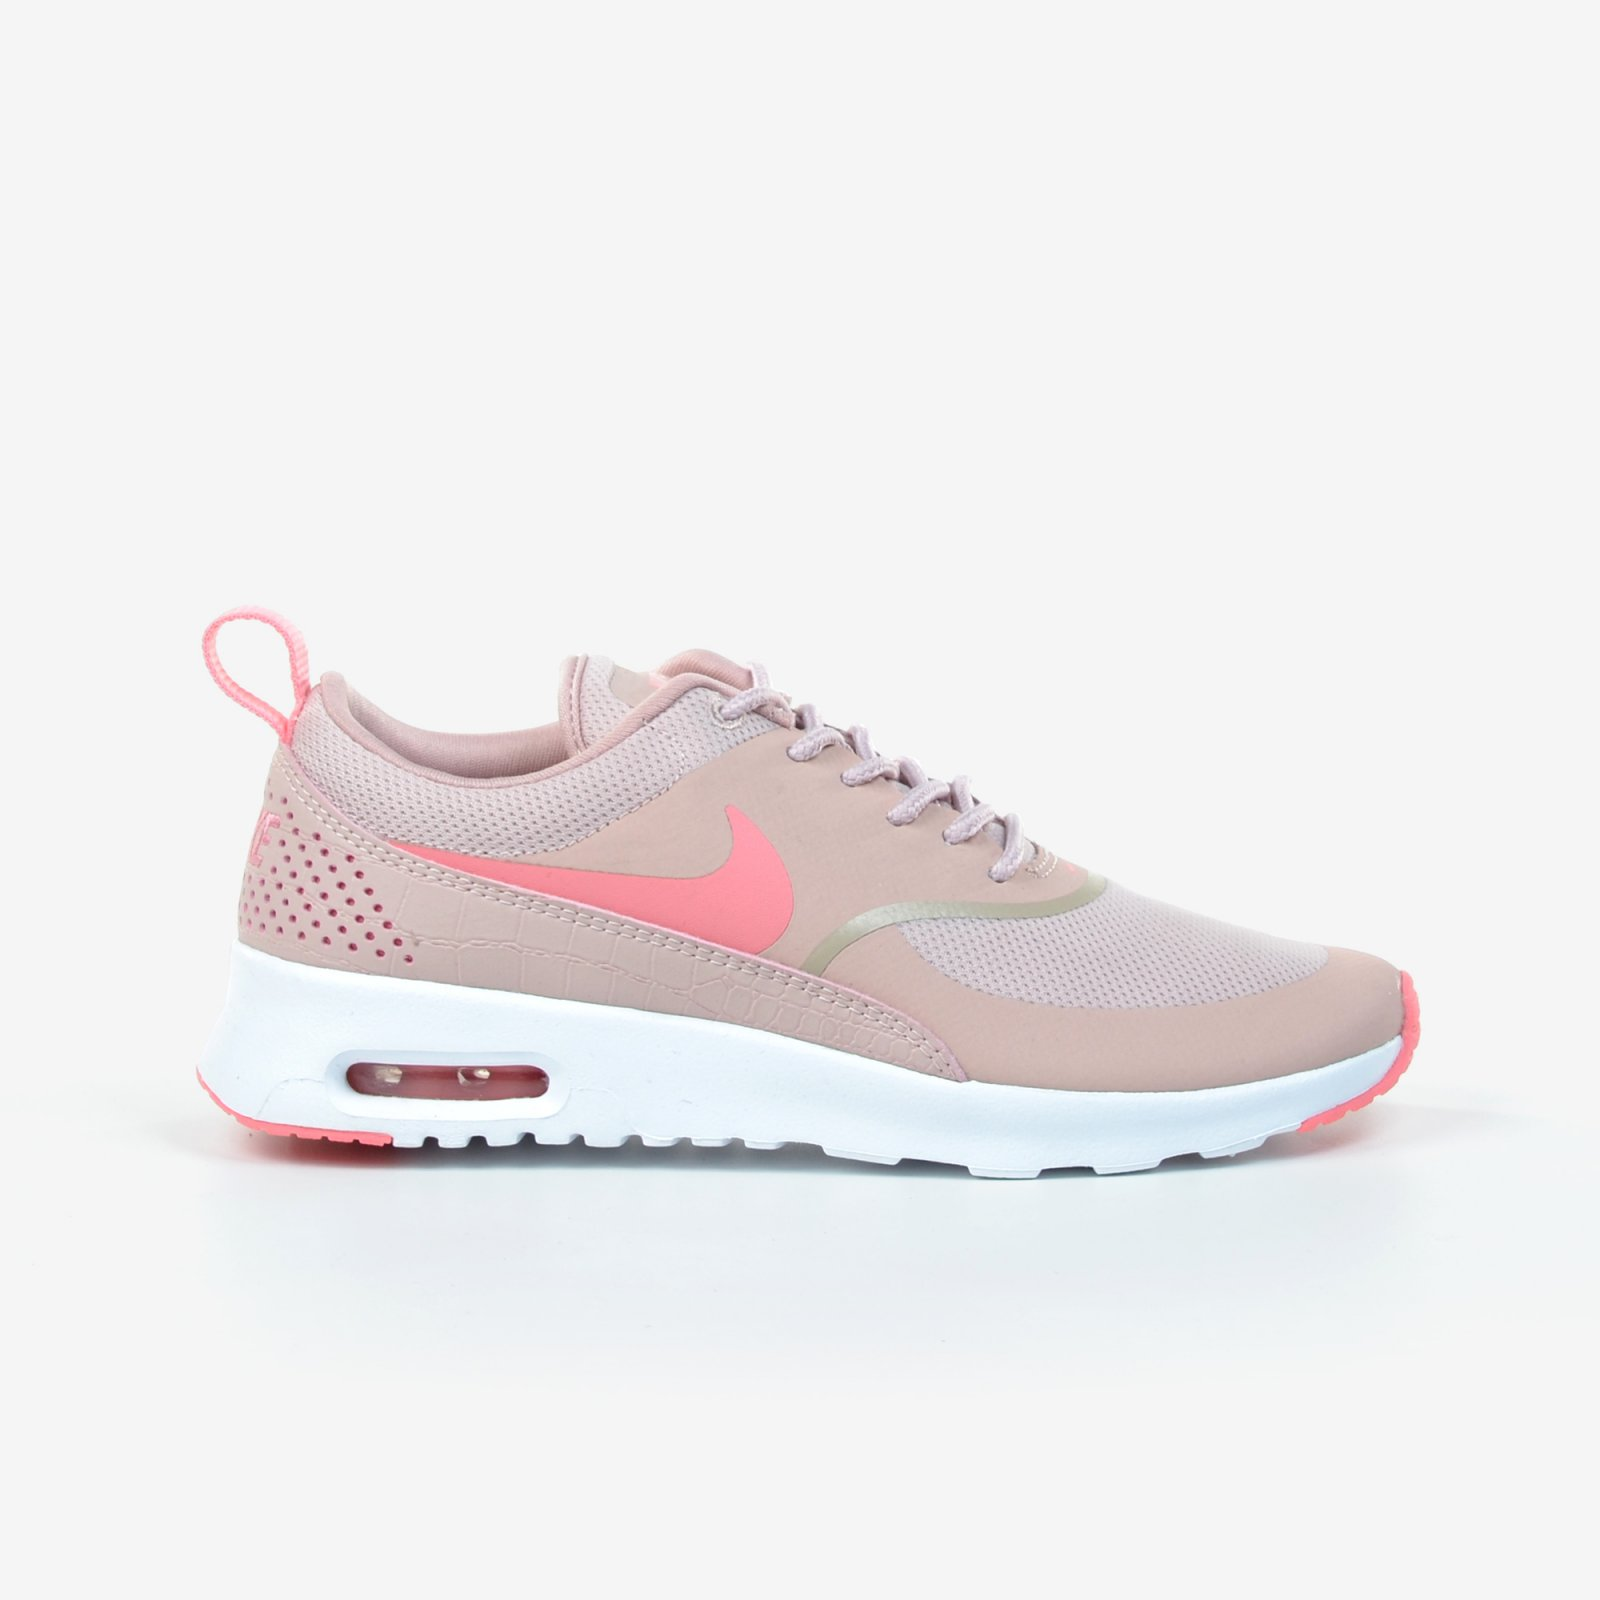 Nike Air Max Thea in pink 599409 | everysize